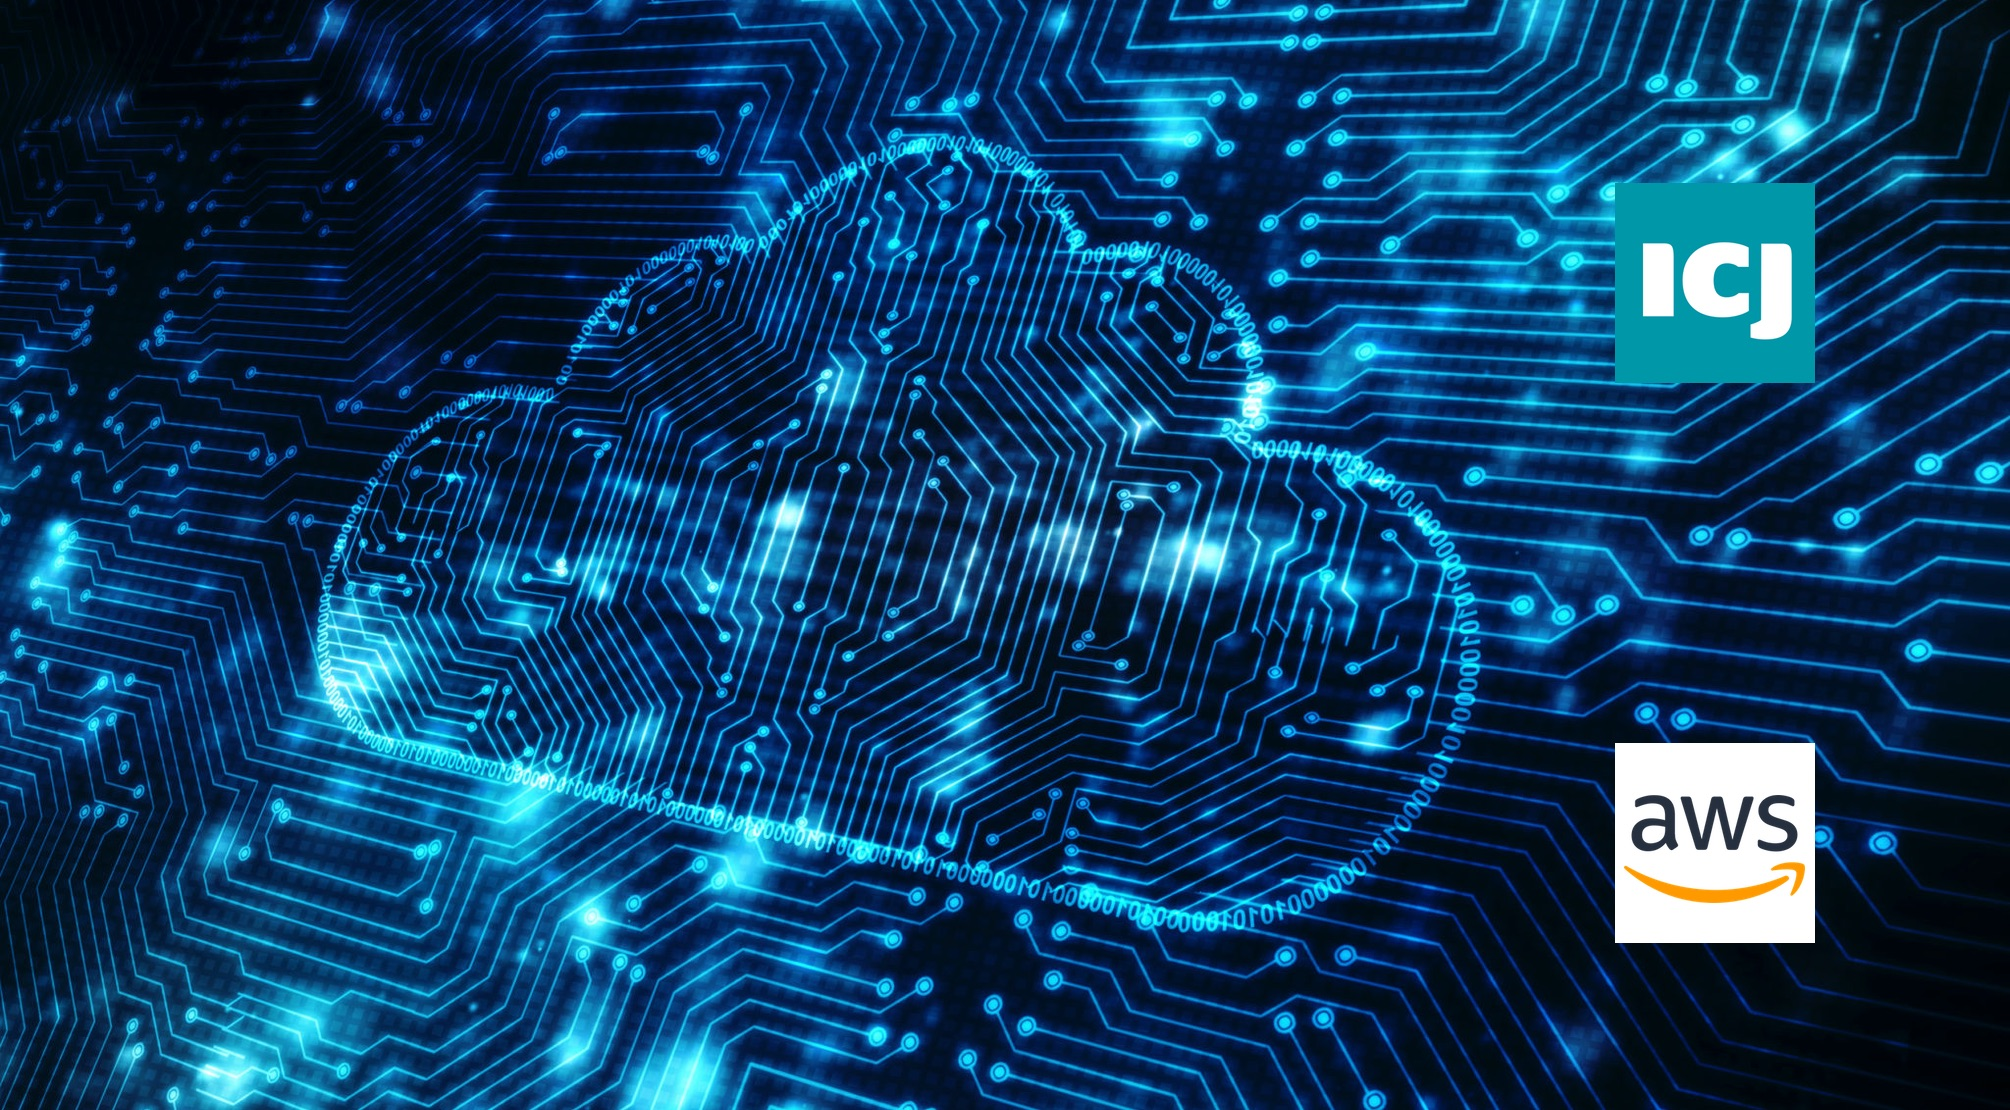 Powering healthcare innovation with cloud technology